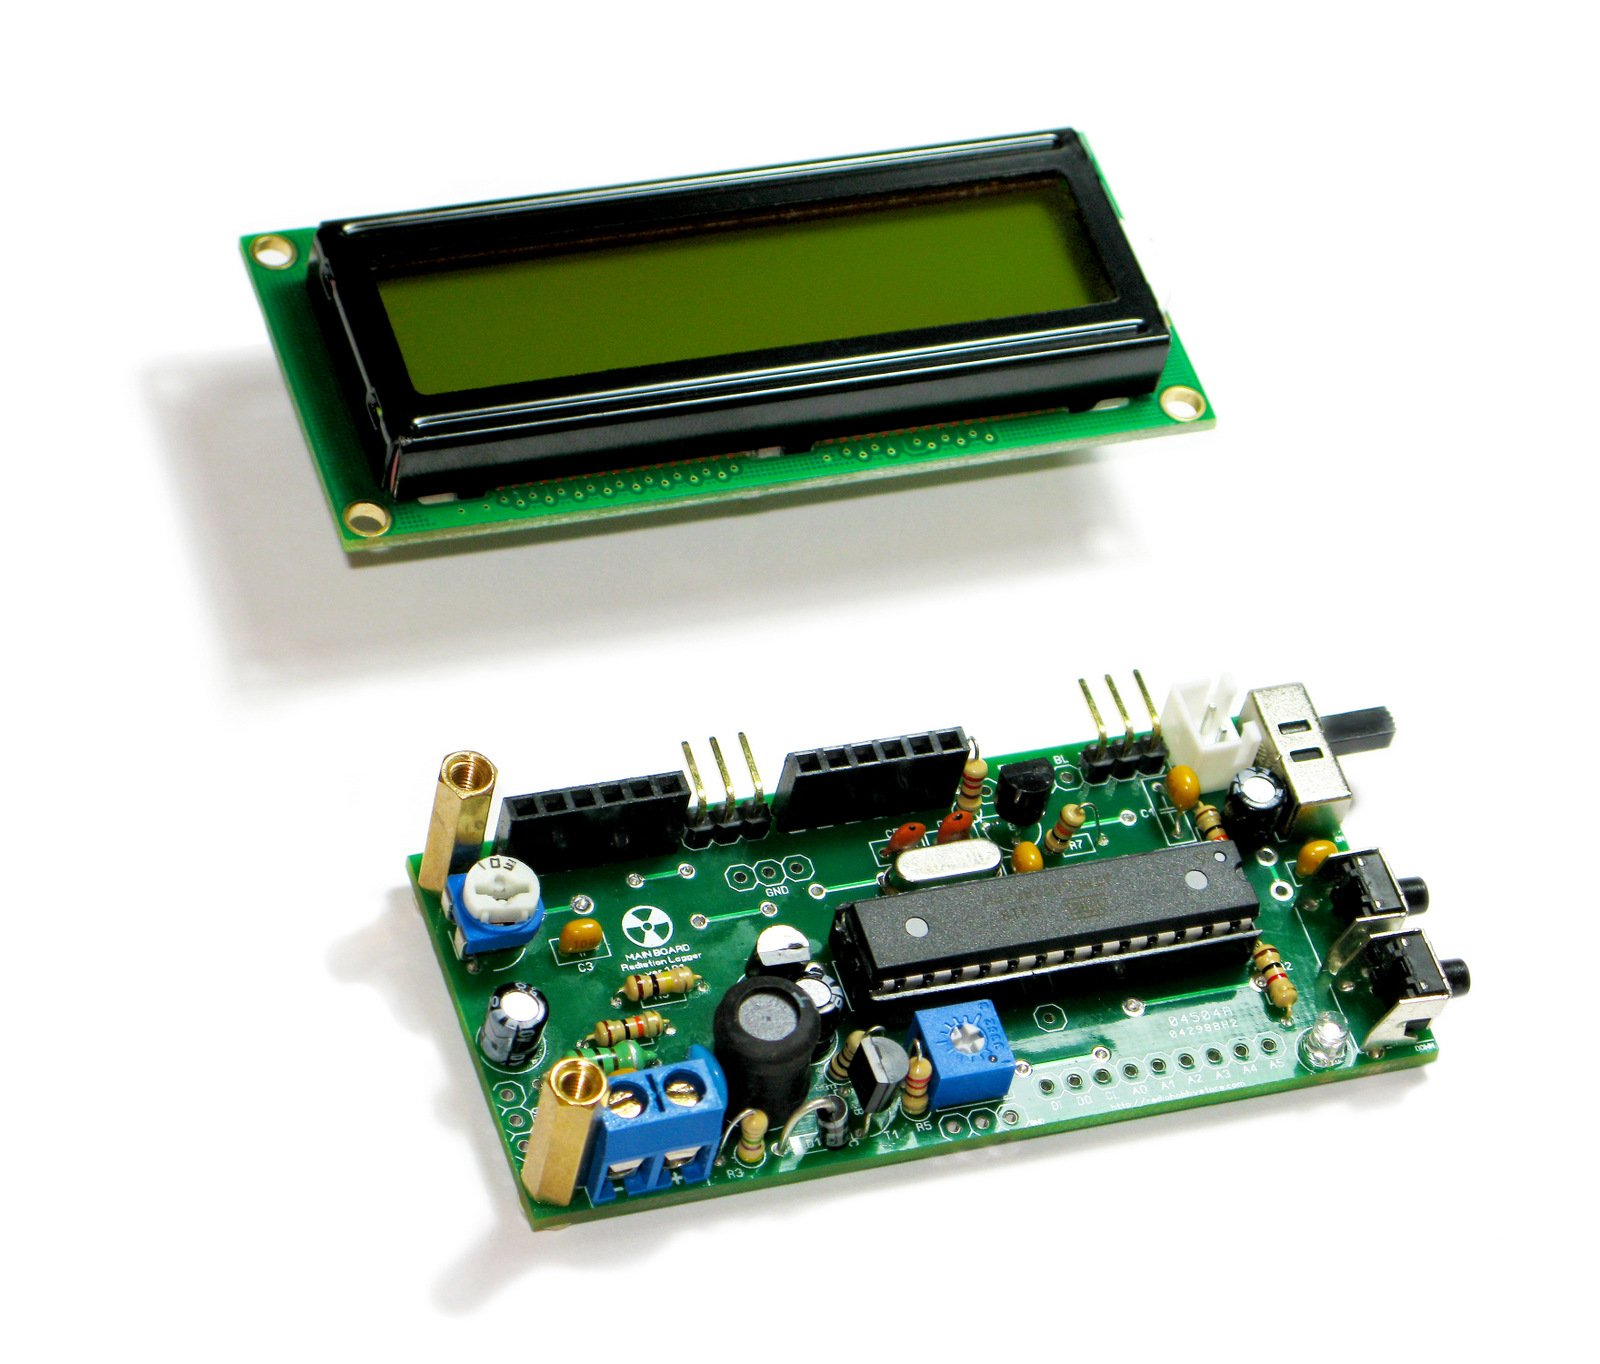 Diy arduino ide geiger counter kit with uart log from